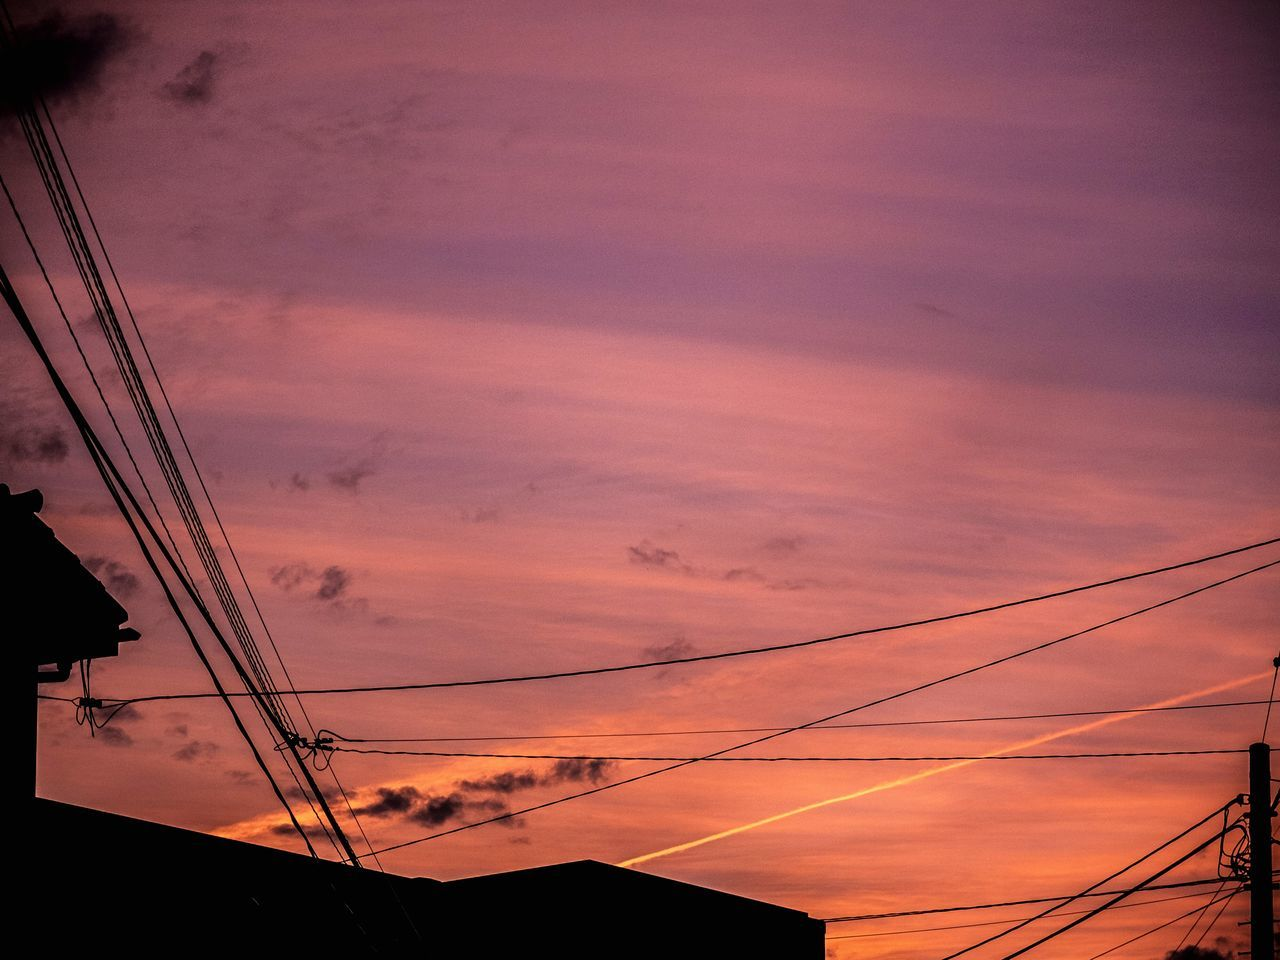 cable, sunset, connection, silhouette, power line, sky, power supply, cloud - sky, electricity pylon, no people, technology, nature, low angle view, electricity, beauty in nature, outdoors, telephone line, fuel and power generation, scenics